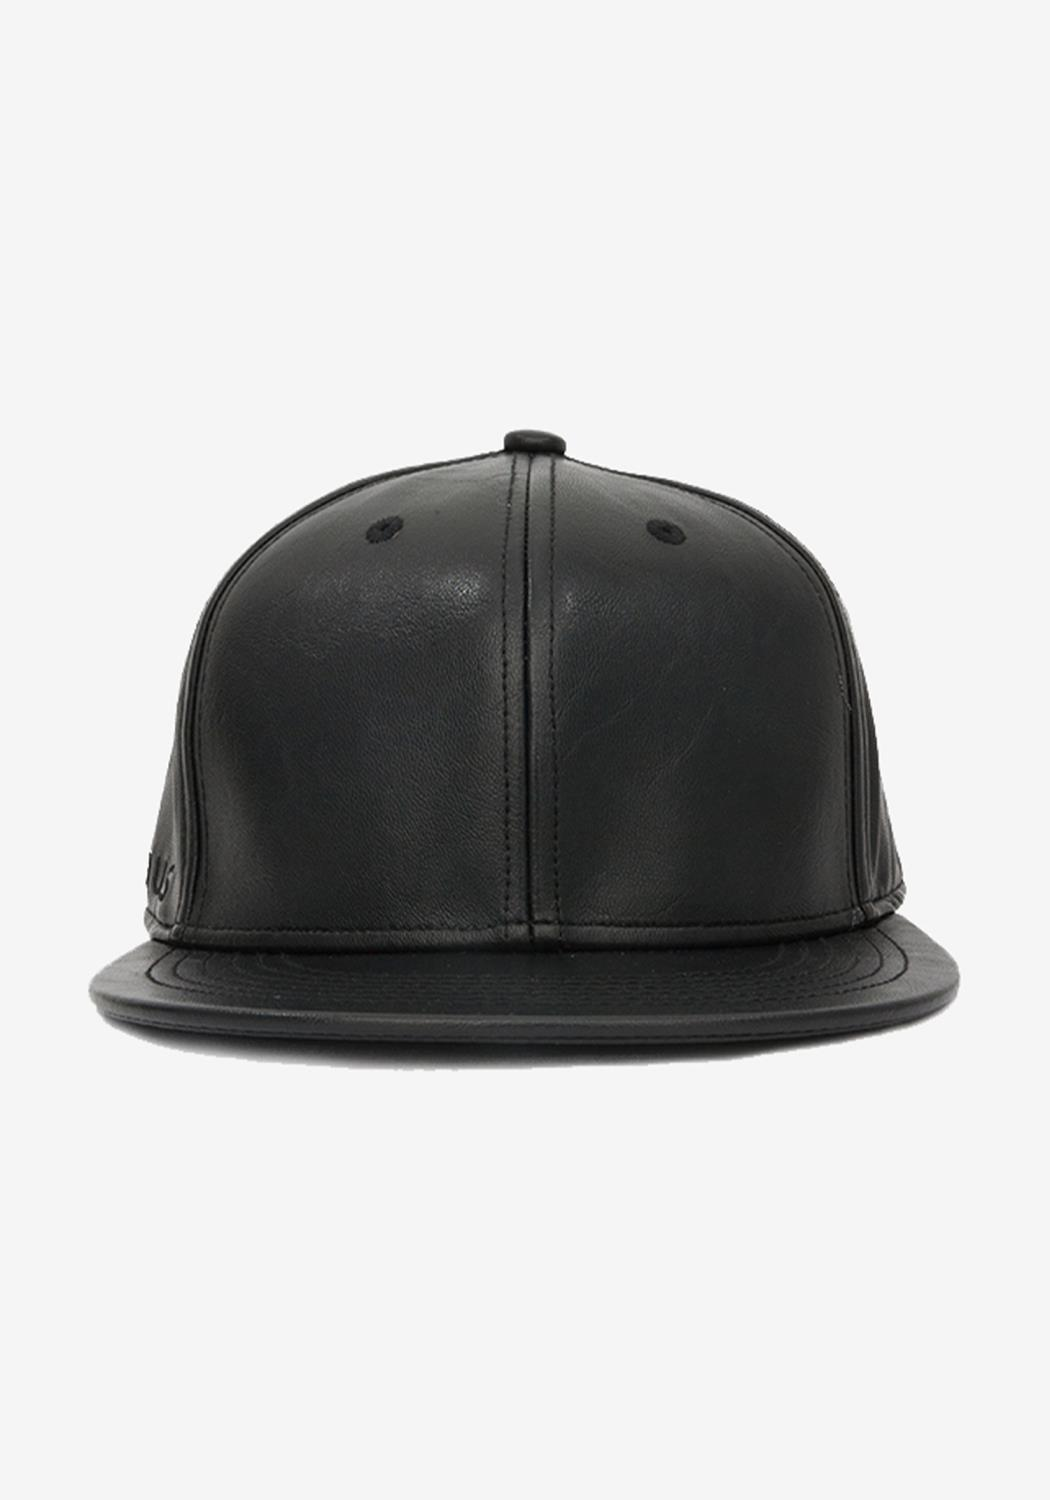 Pleather Snap Back with Multi Color Bird Logo Embroidery